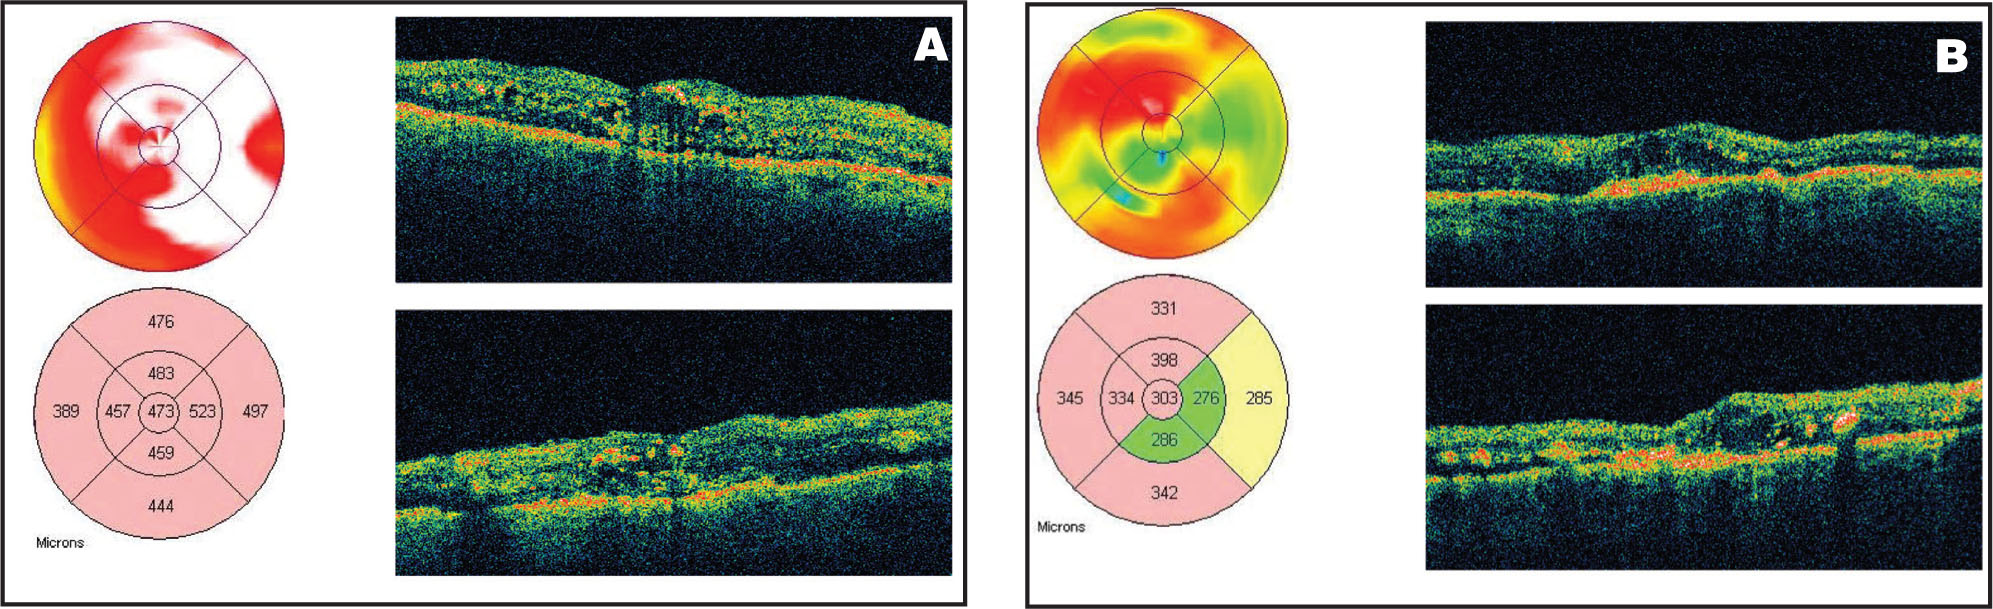 (A) Optical Coherence Tomography (OCT) of the Right Eye in Case #1, Showing Diffuse Macular Thickening of 473 Microns with Cystoid Spaces and Submacular Fluid. (B) OCT of the Left Eye also Shows Diffuse Macular Thickening, with a Central Macular Thickness of 303 Microns.